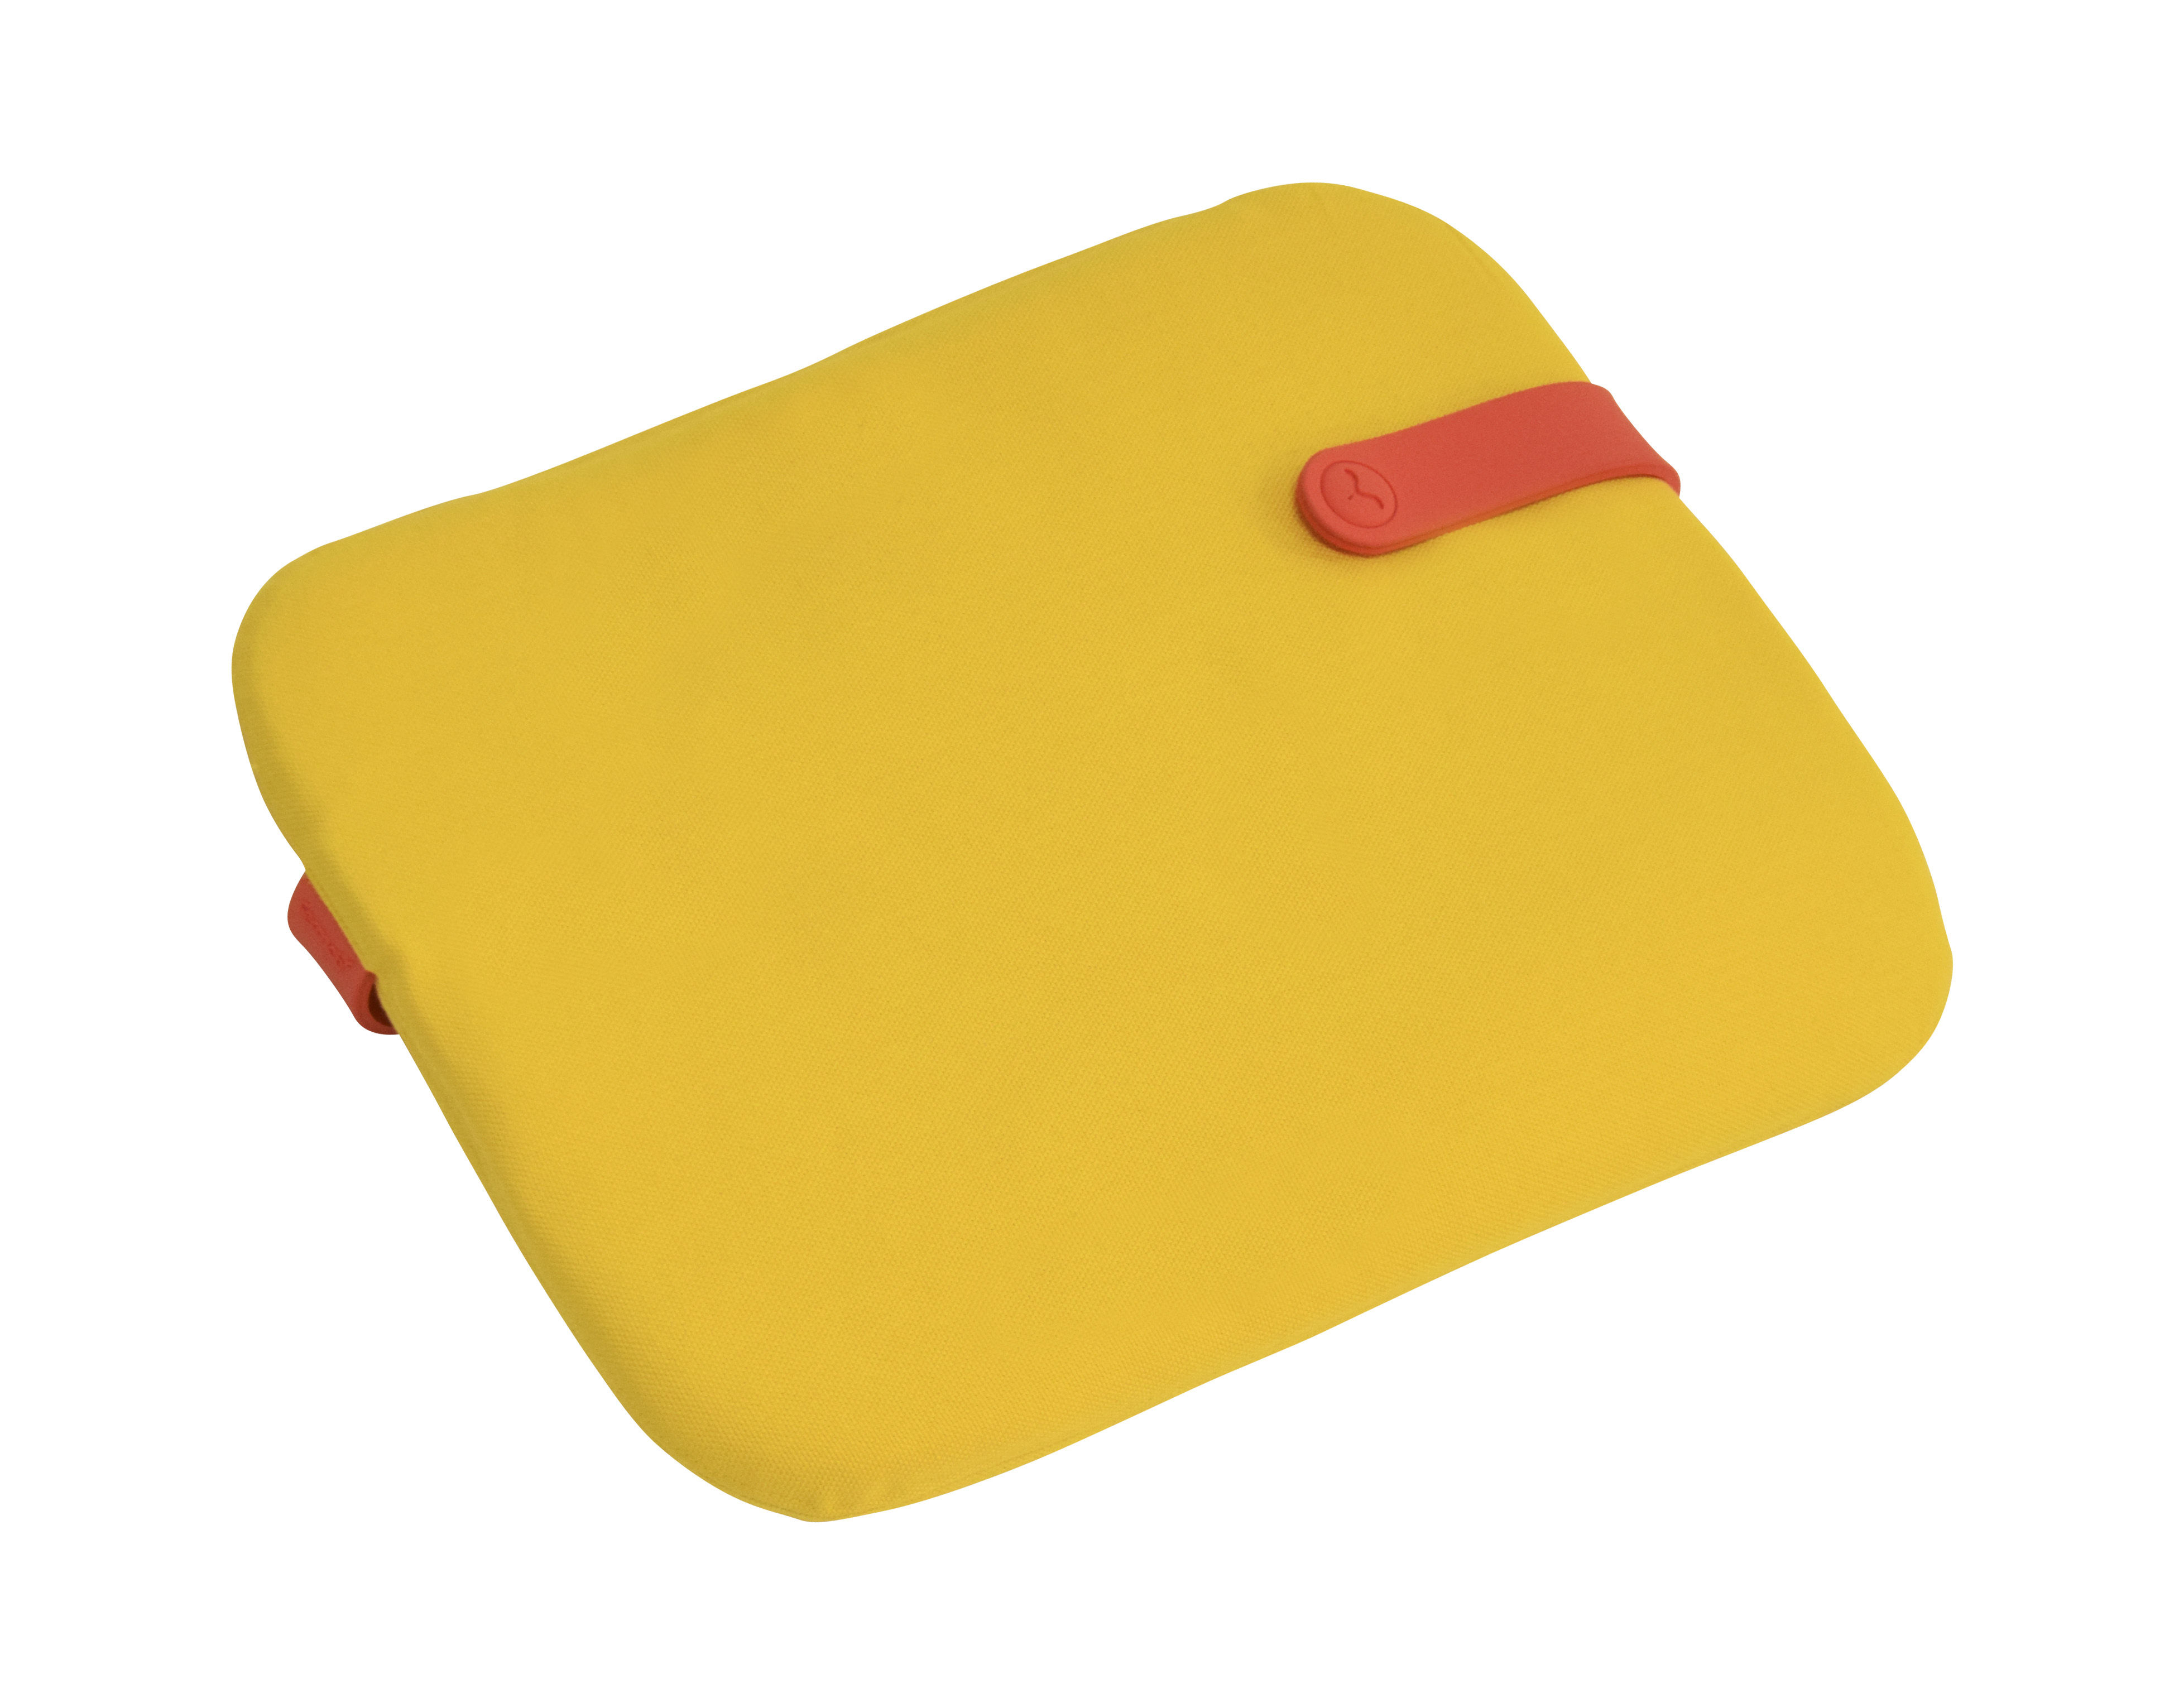 Decoration - Cushions & Poufs - Color Mix Cushion - For Bistro chair - 38 x 30 cm by Fermob - Toucan yellow / Capucin stripe - Acrylic fabric, Foam, PVC